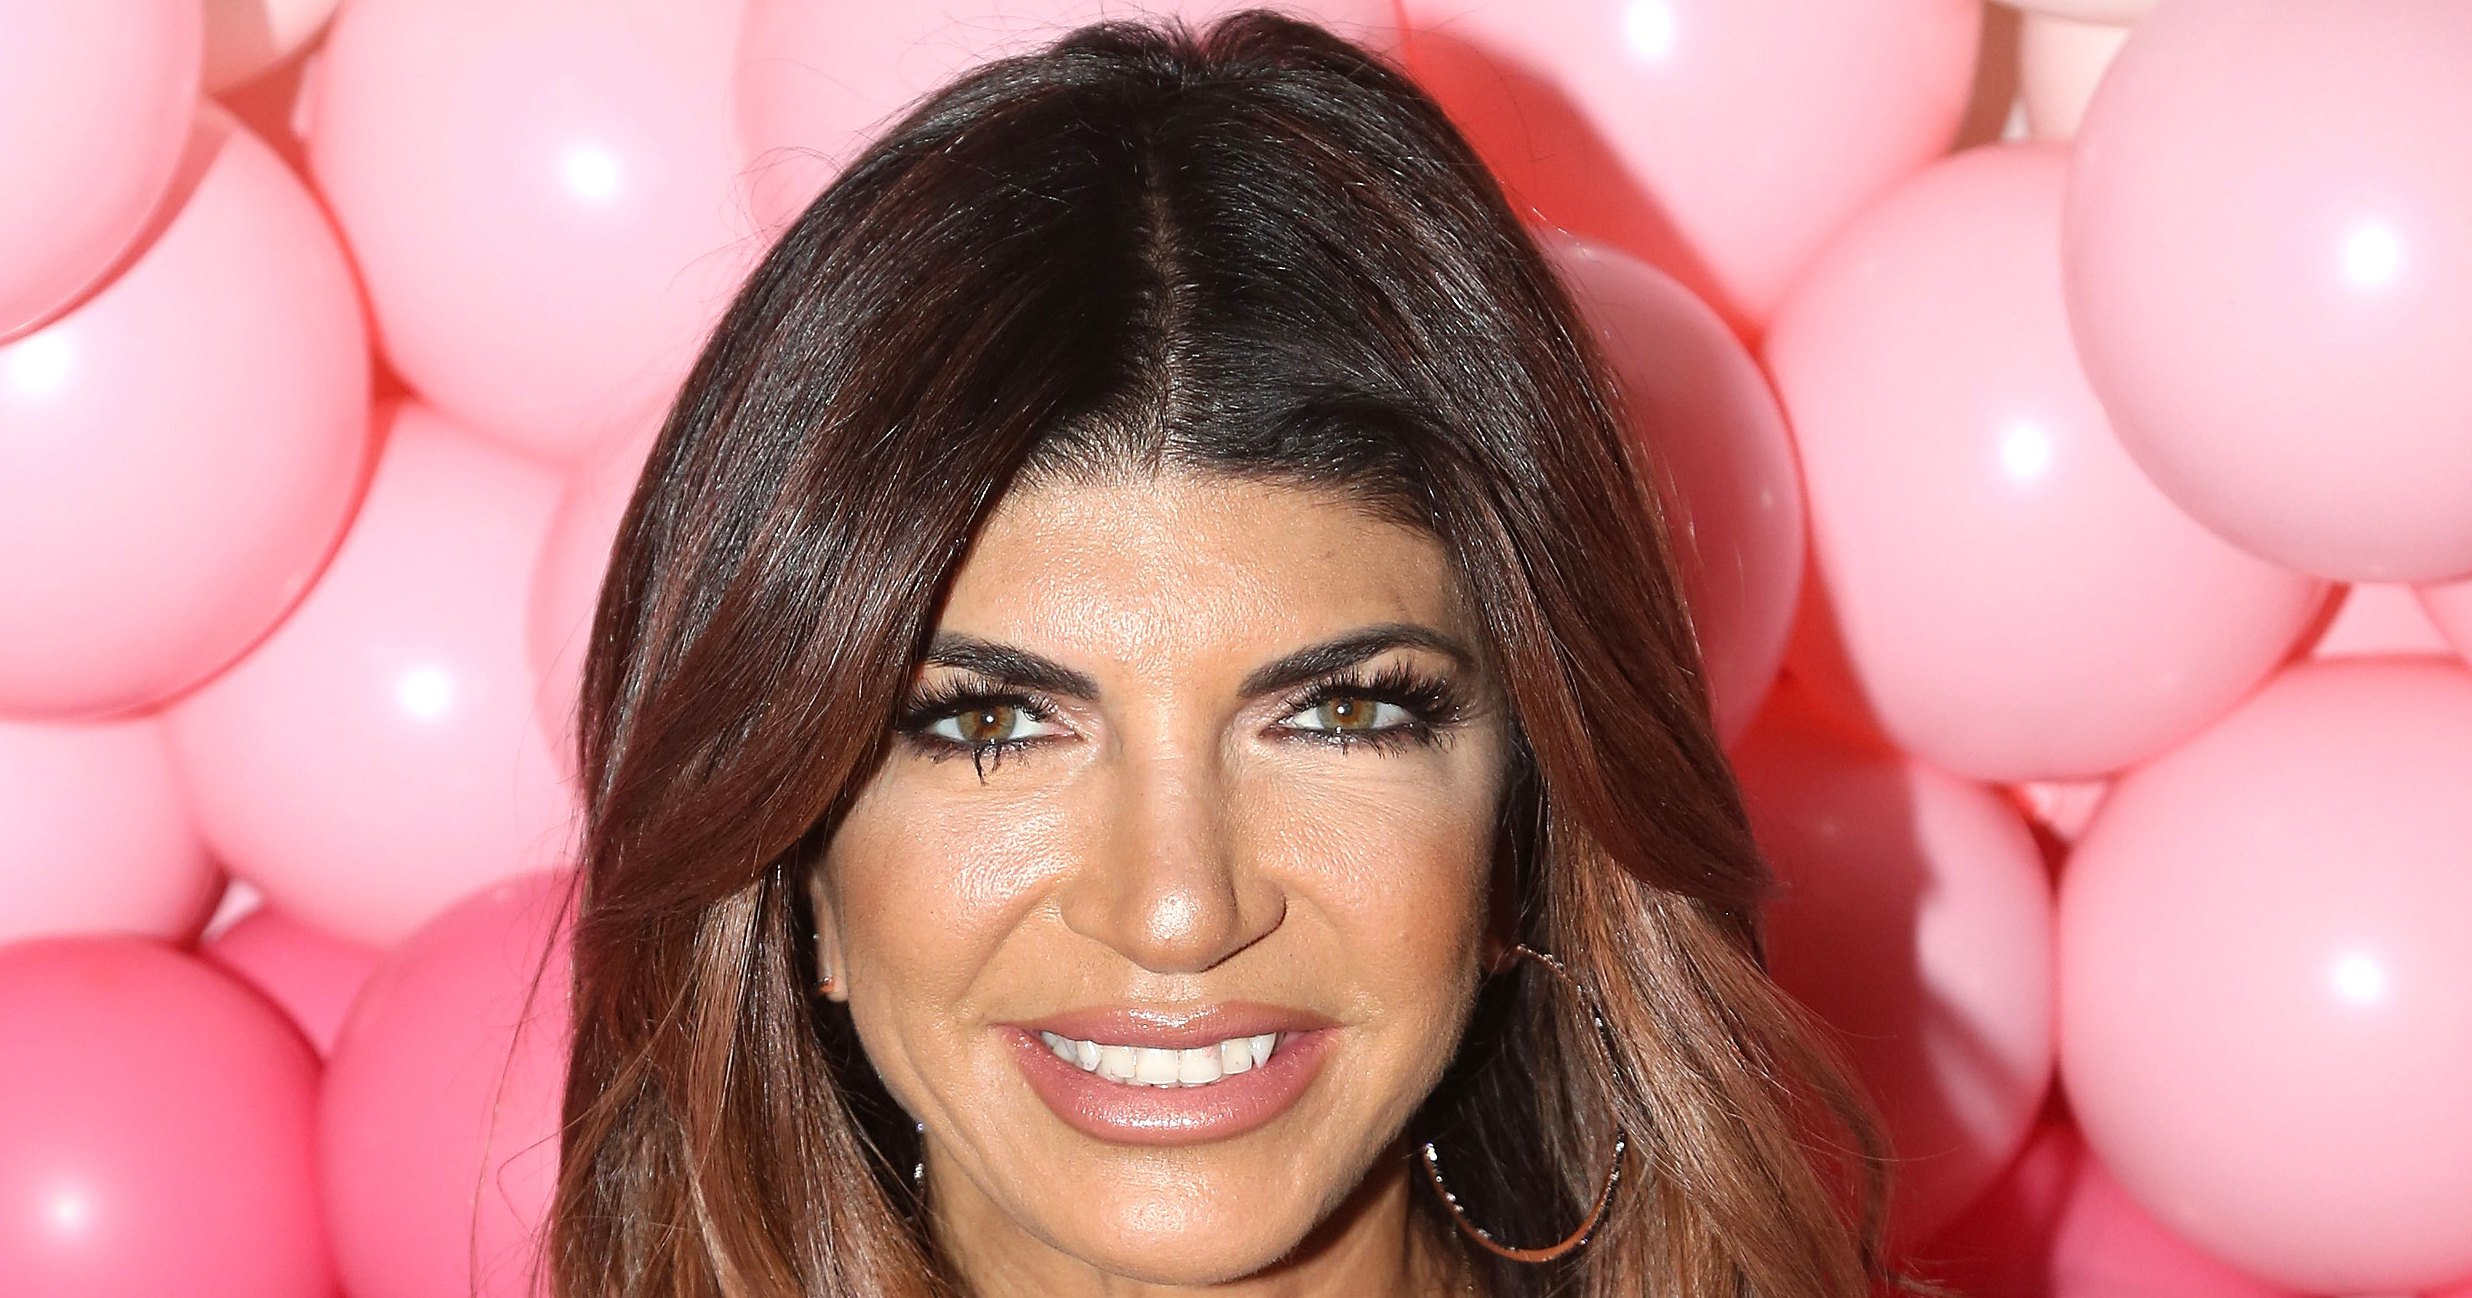 Teresa Giudice Parties With Friends in NYC After Saying She'd Consider Divorcing Joe